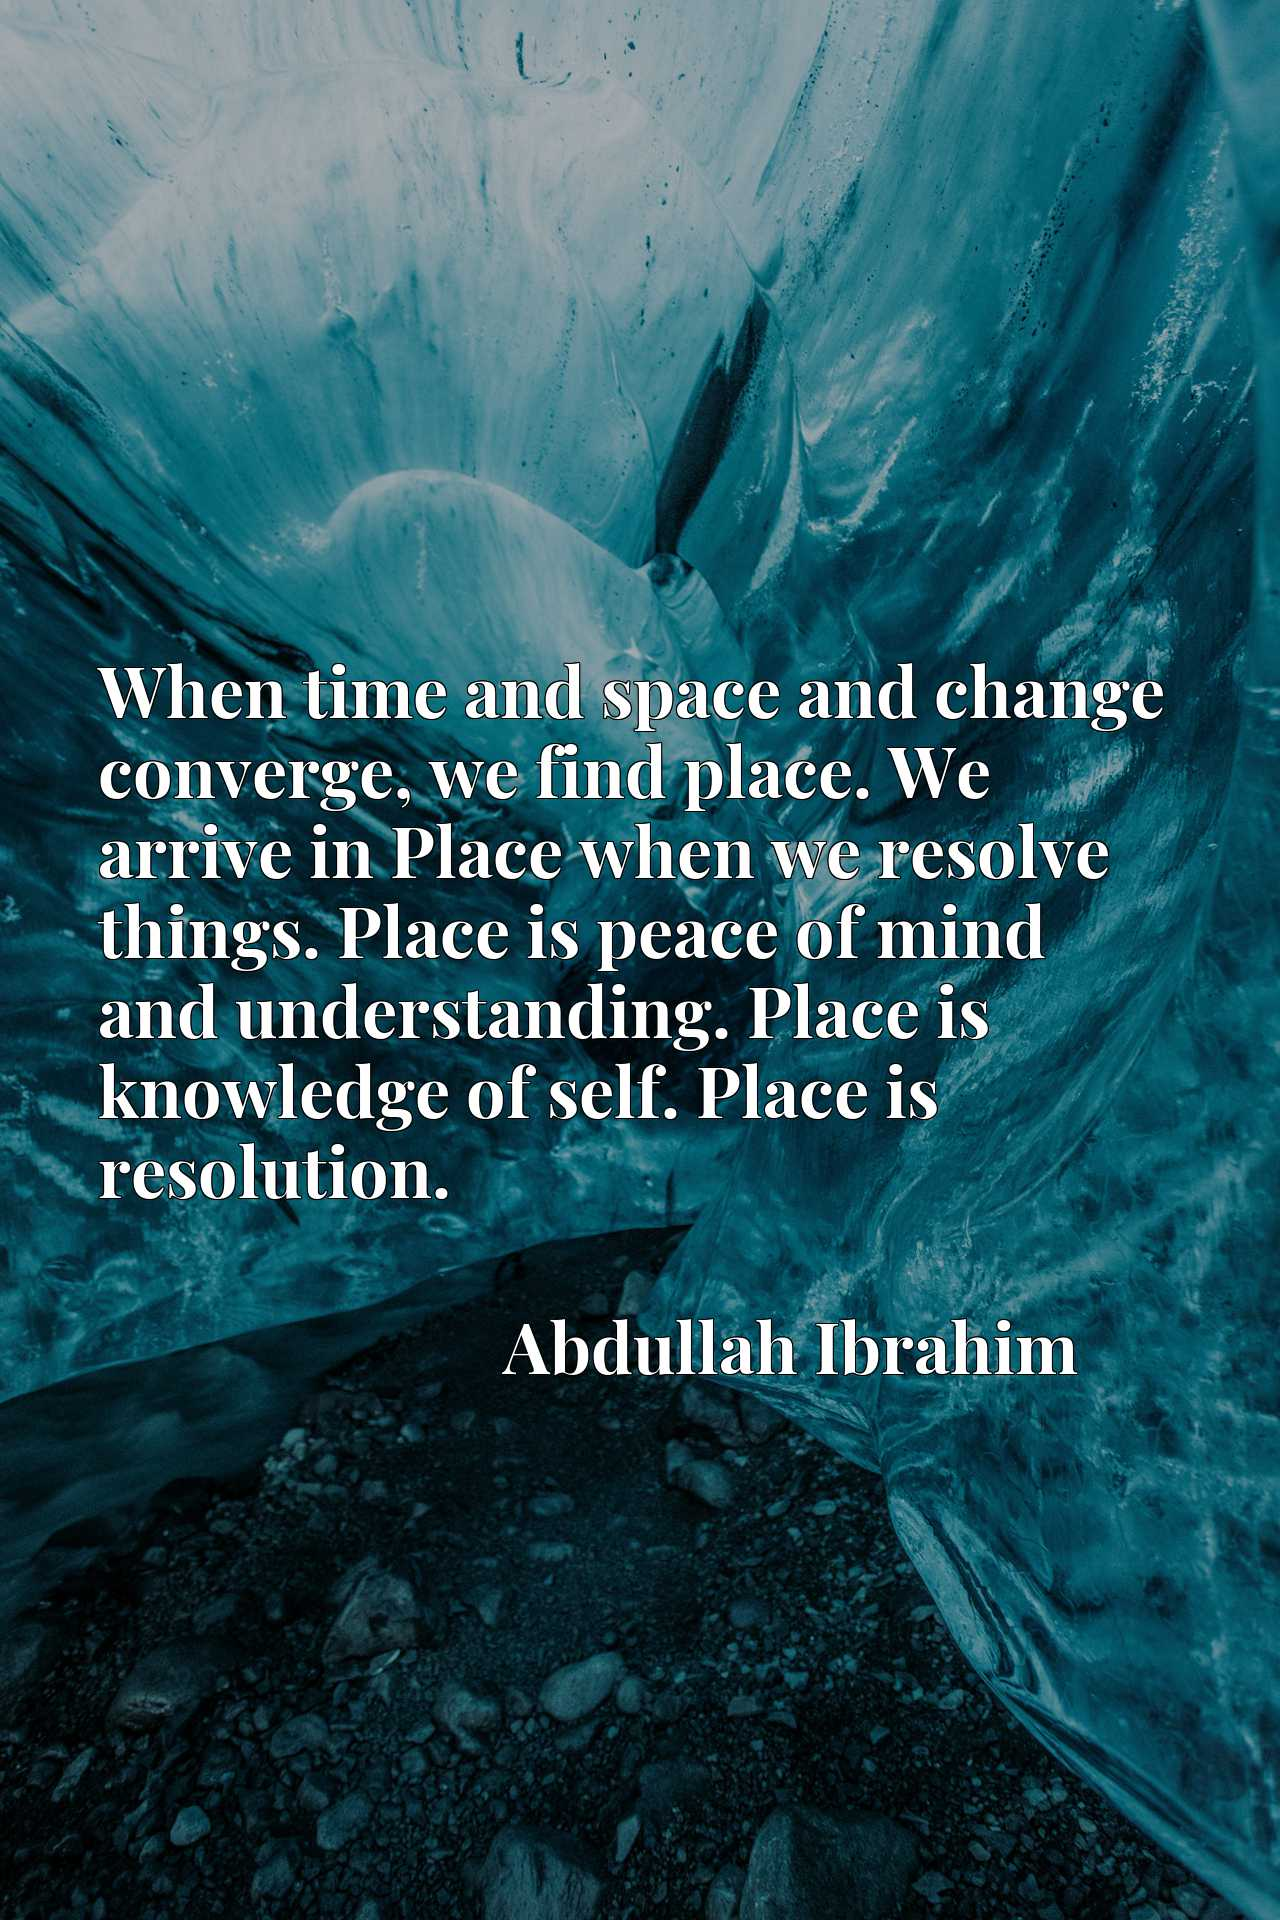 When time and space and change converge, we find place. We arrive in Place when we resolve things. Place is peace of mind and understanding. Place is knowledge of self. Place is resolution.